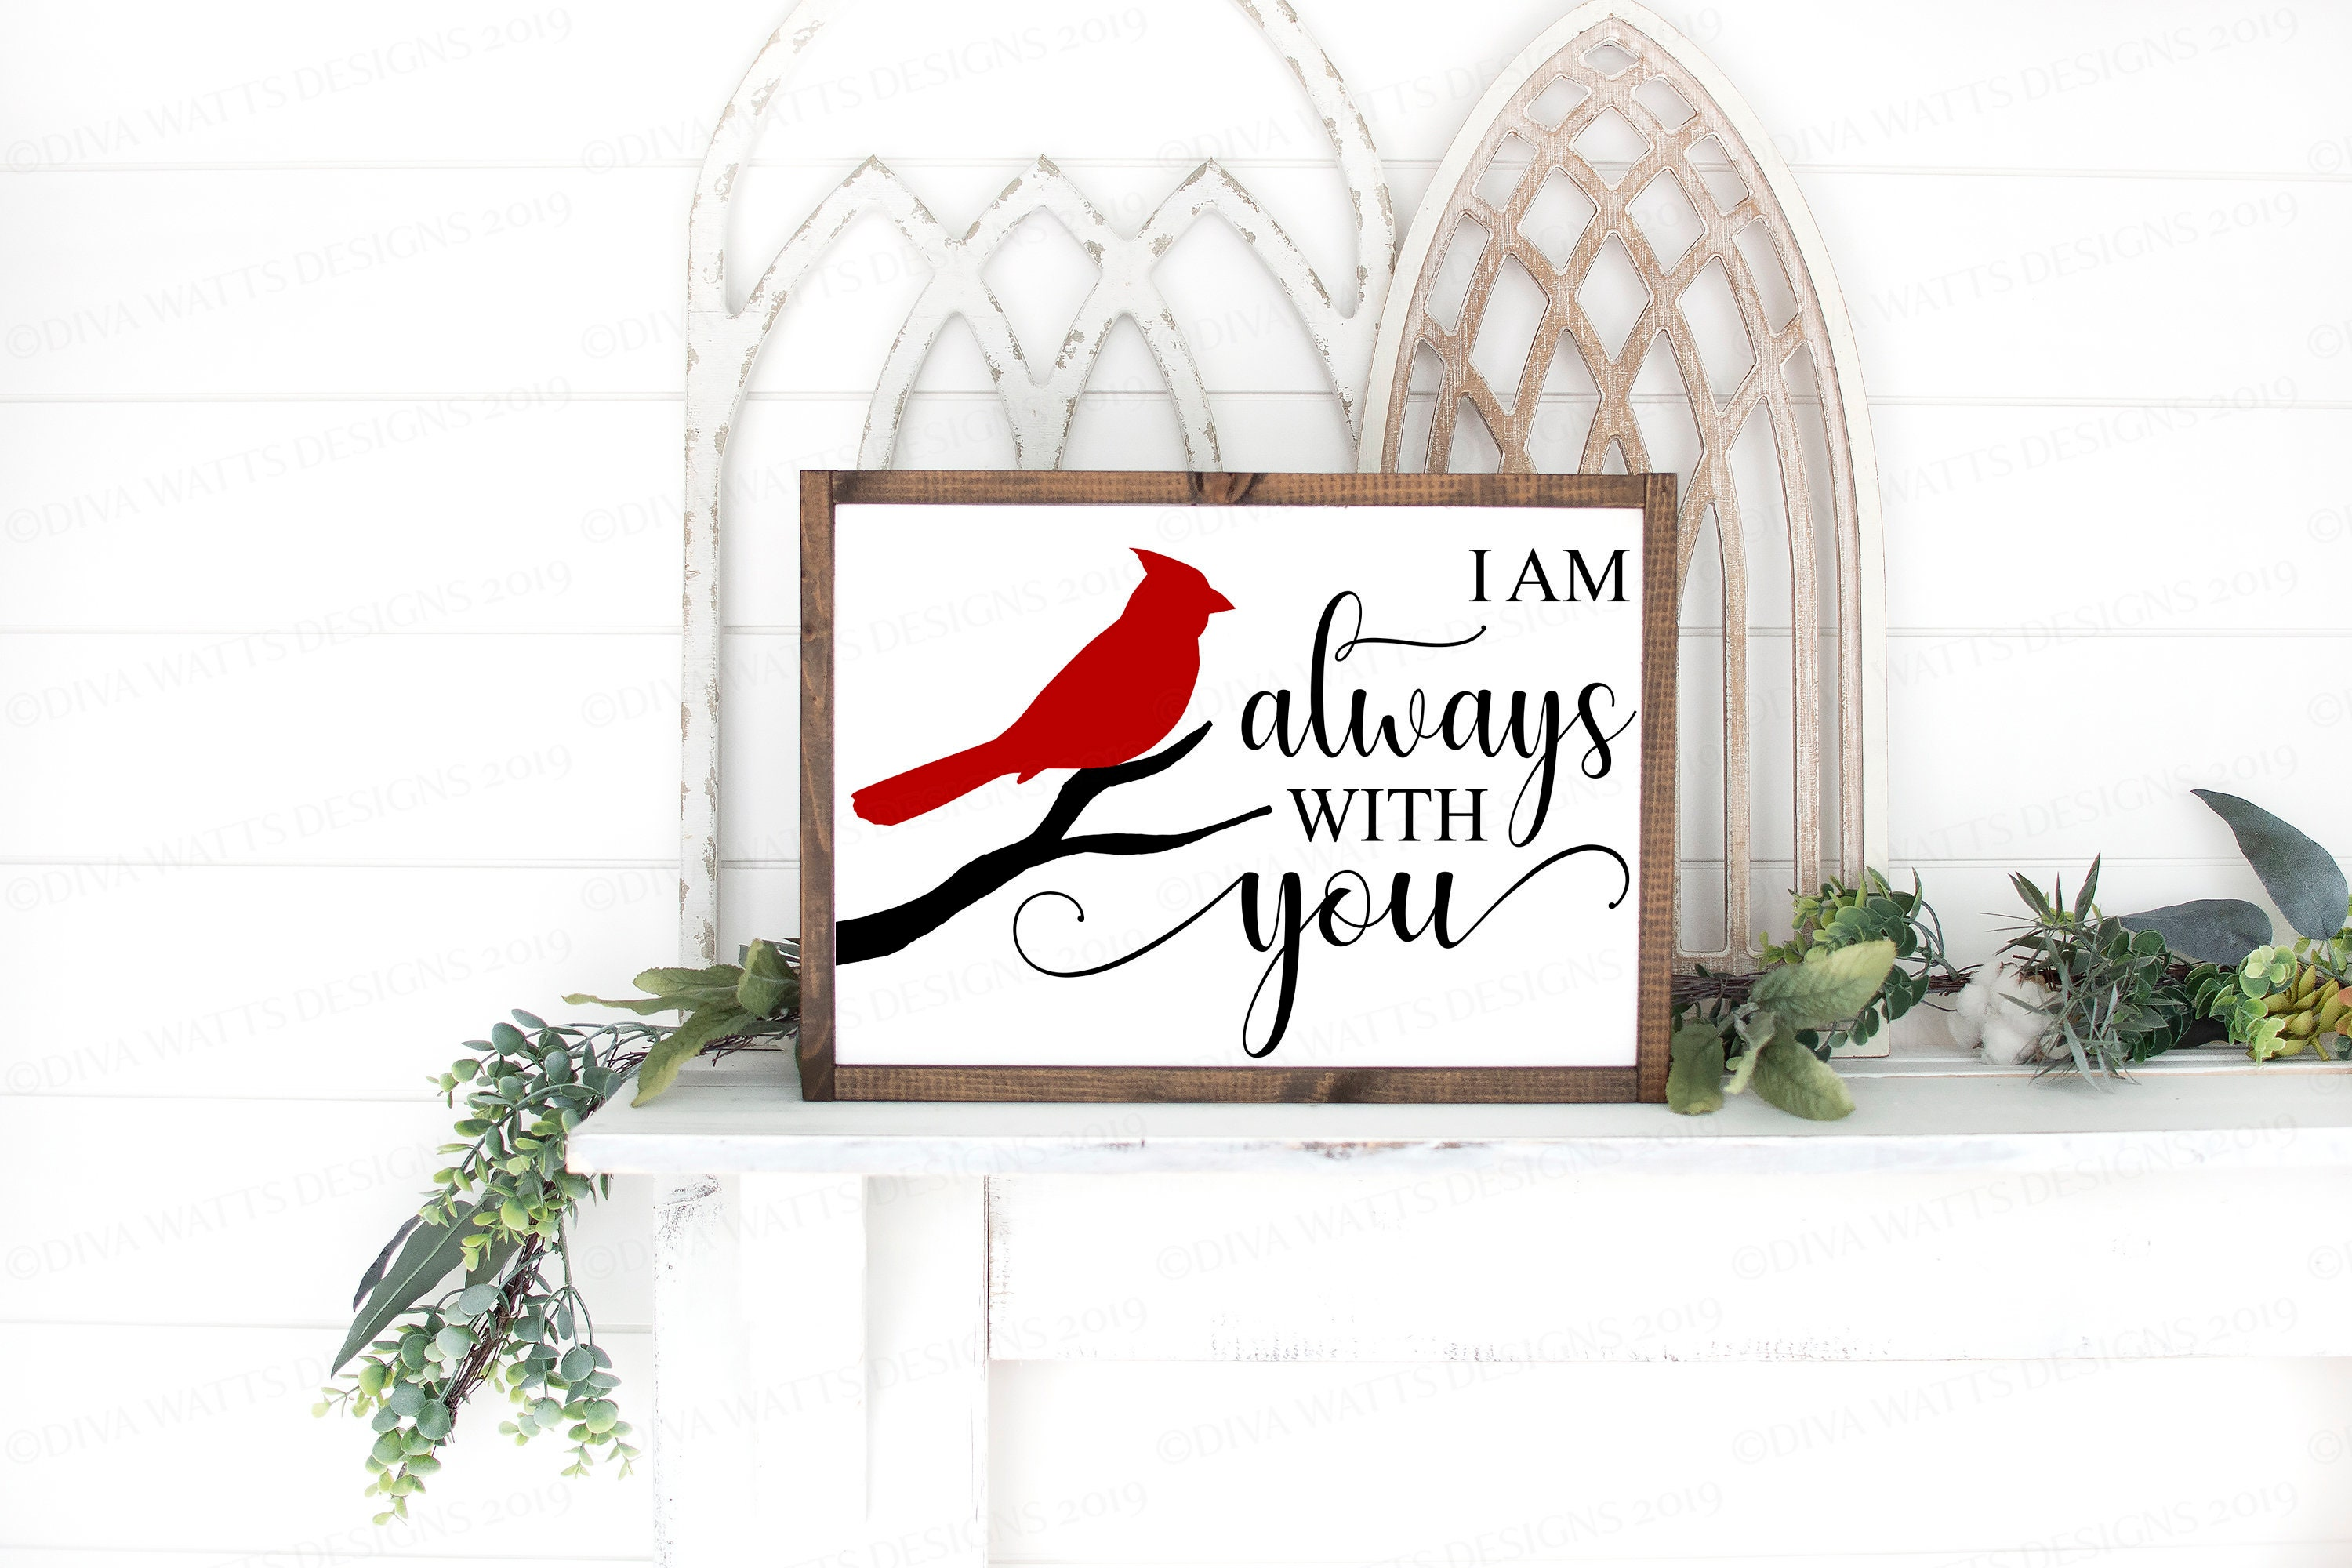 I Am Always With You Svg Red Cardinal Svg Memorial Svg Christmas Ornament Svg Farmhouse Sign Dxf And More Printable